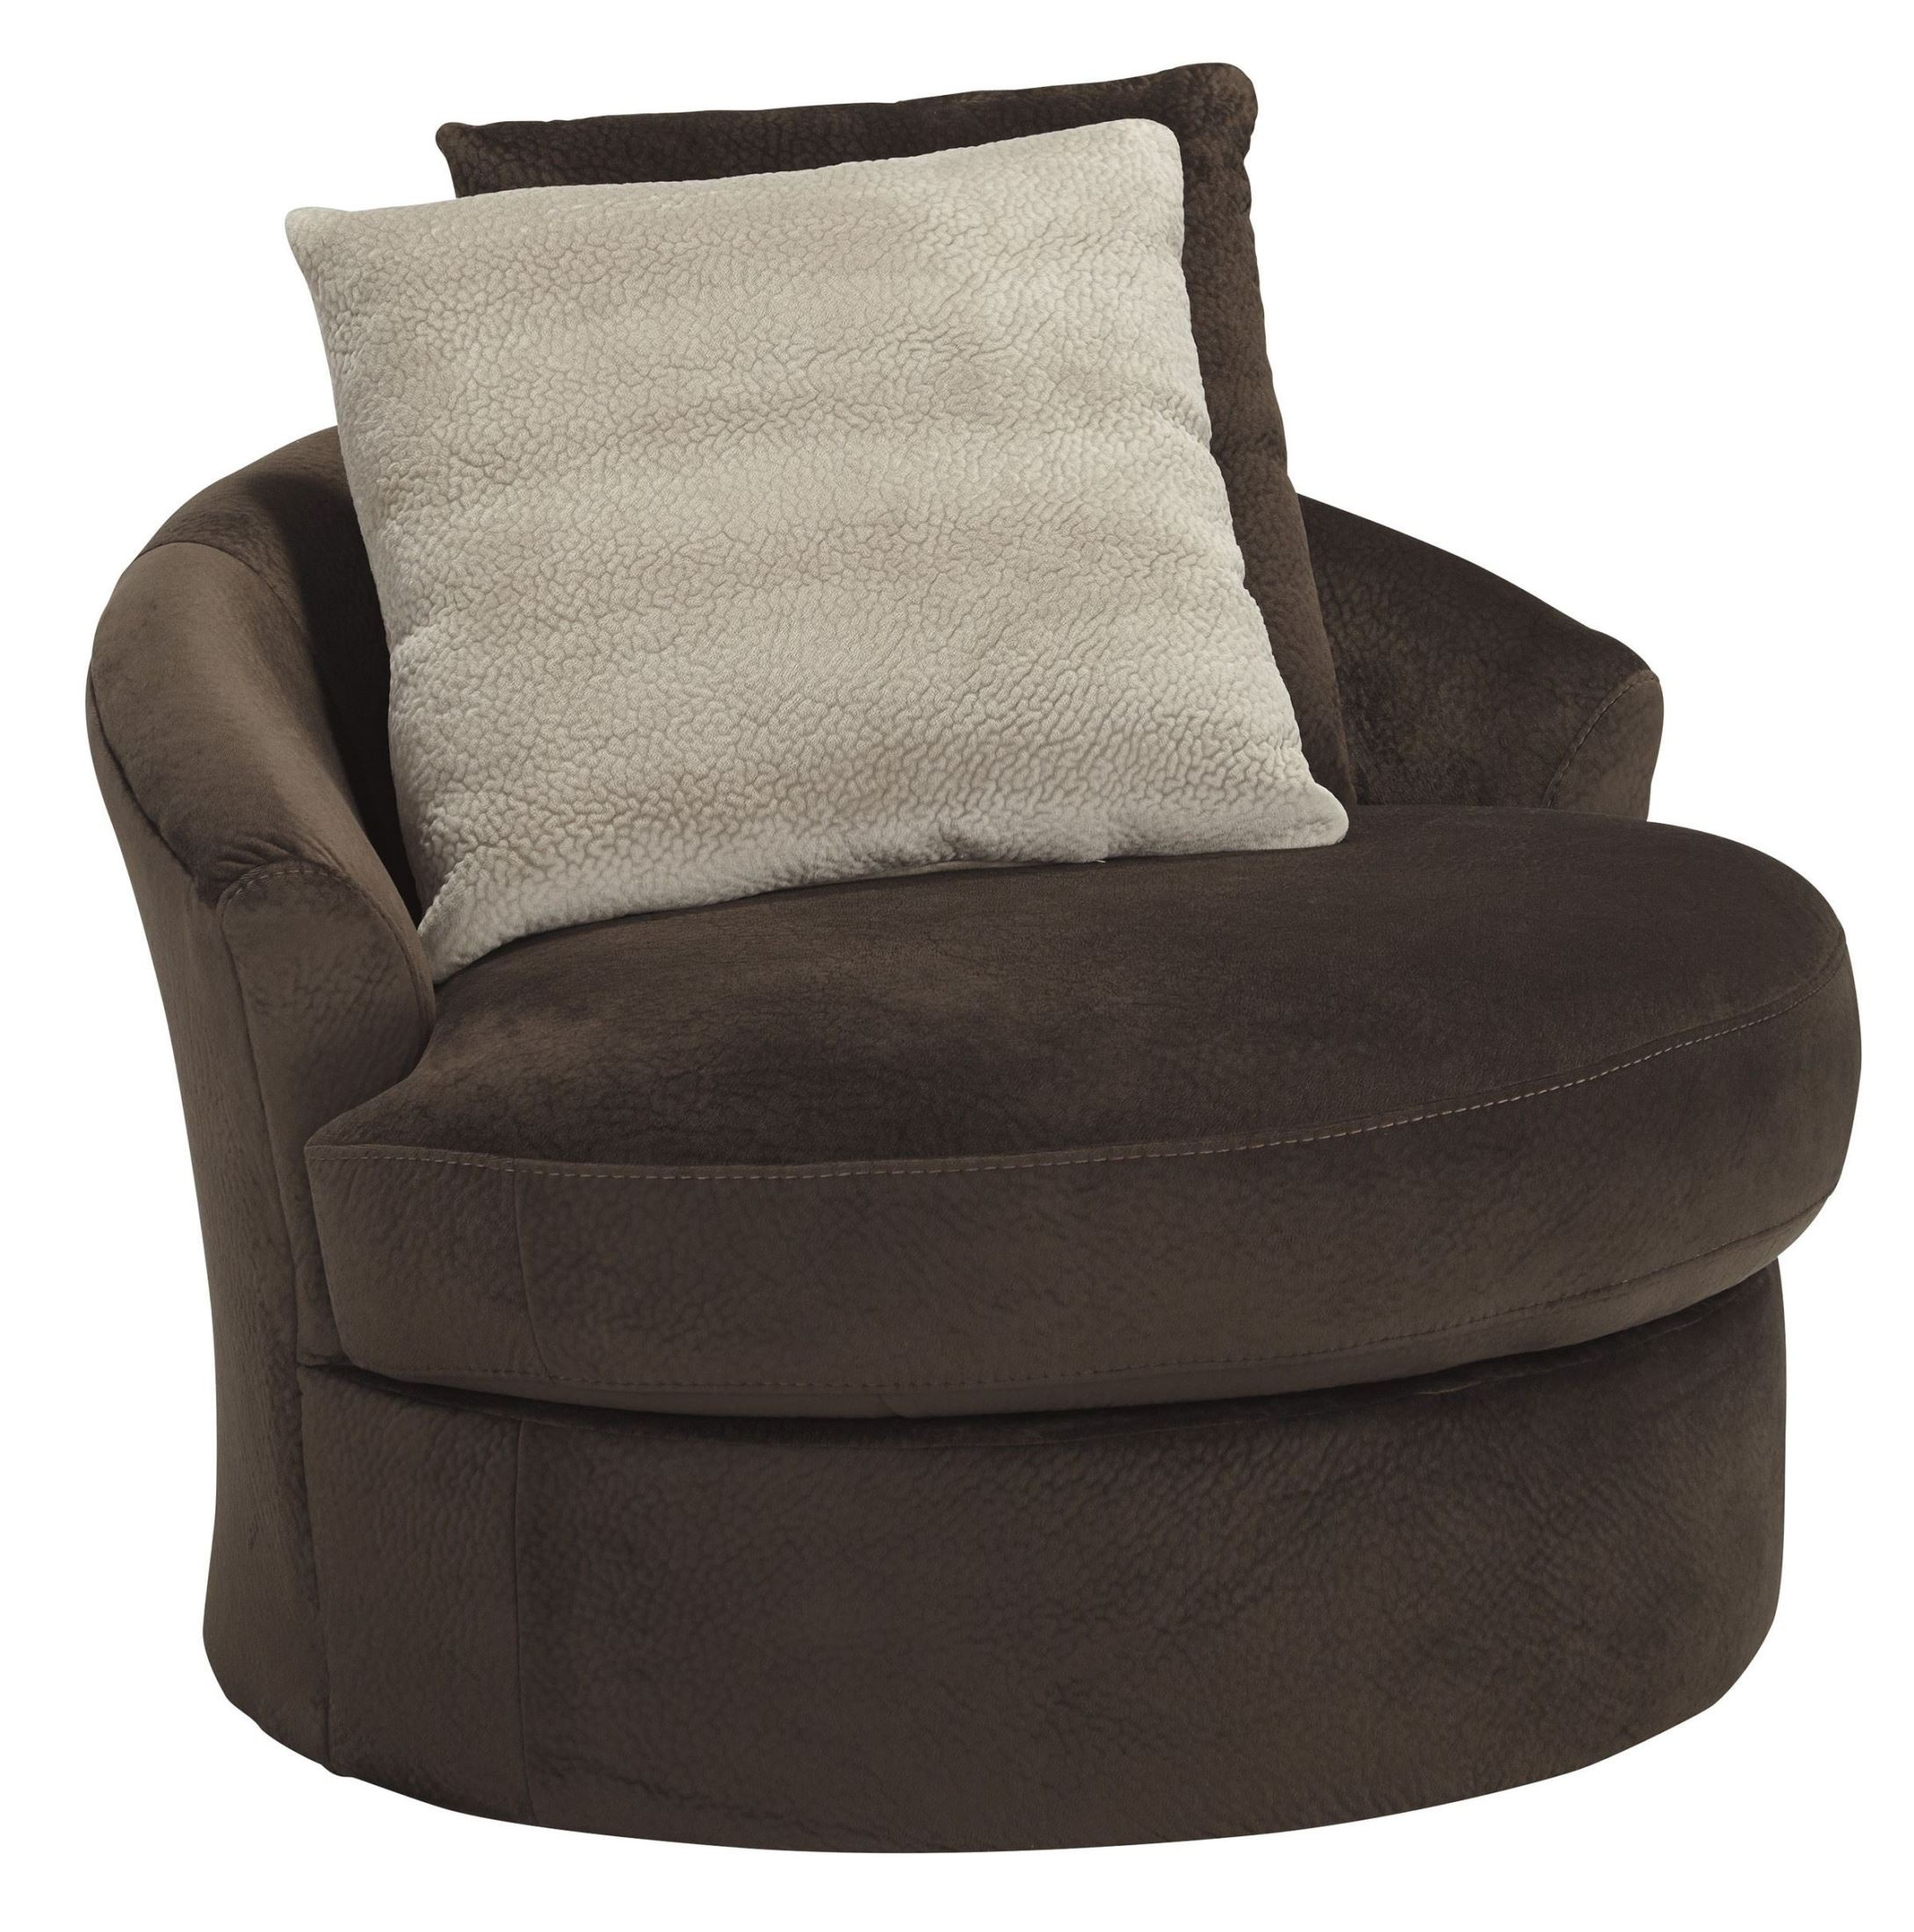 Dahlen Chocolate Swivel Accent Chair From Ashley 8830244